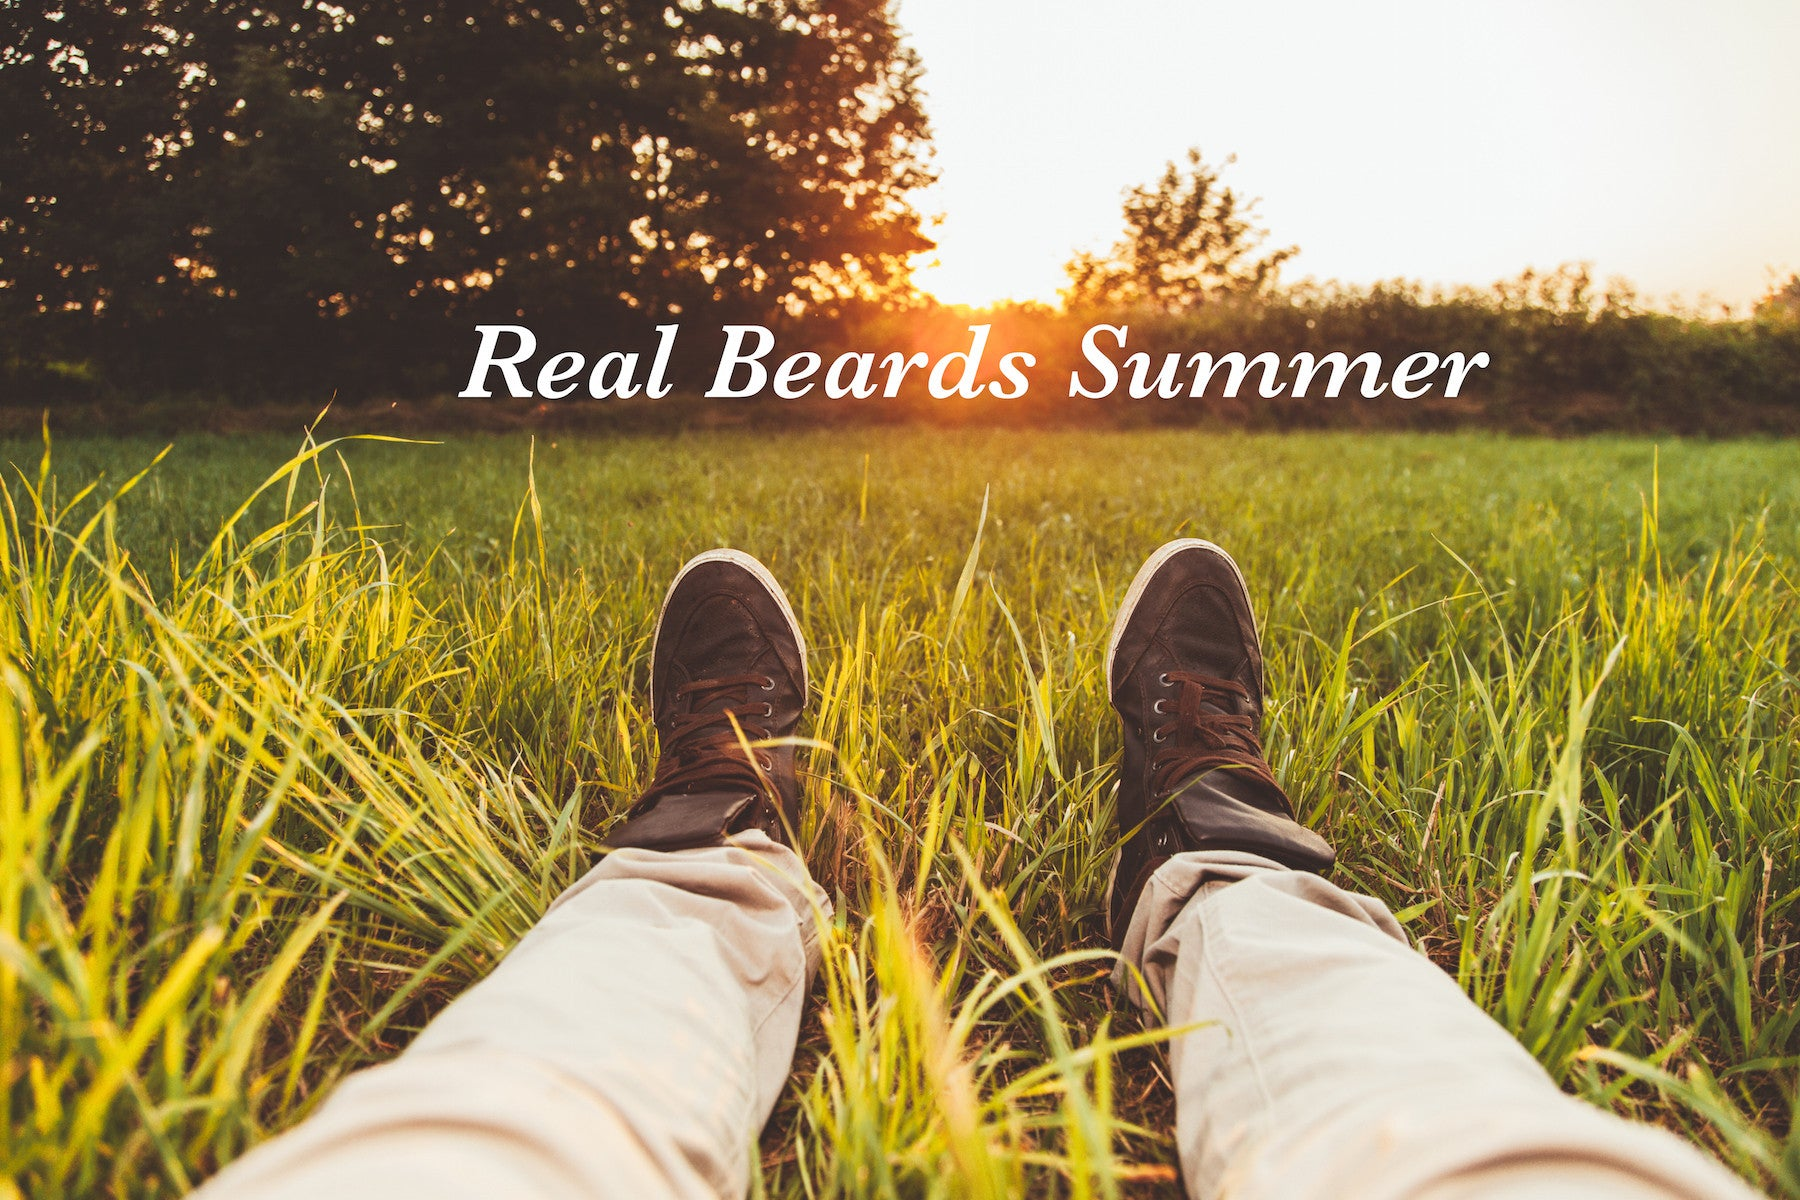 Real Beards Summer: How to Grow and Maintain A Summer Beard